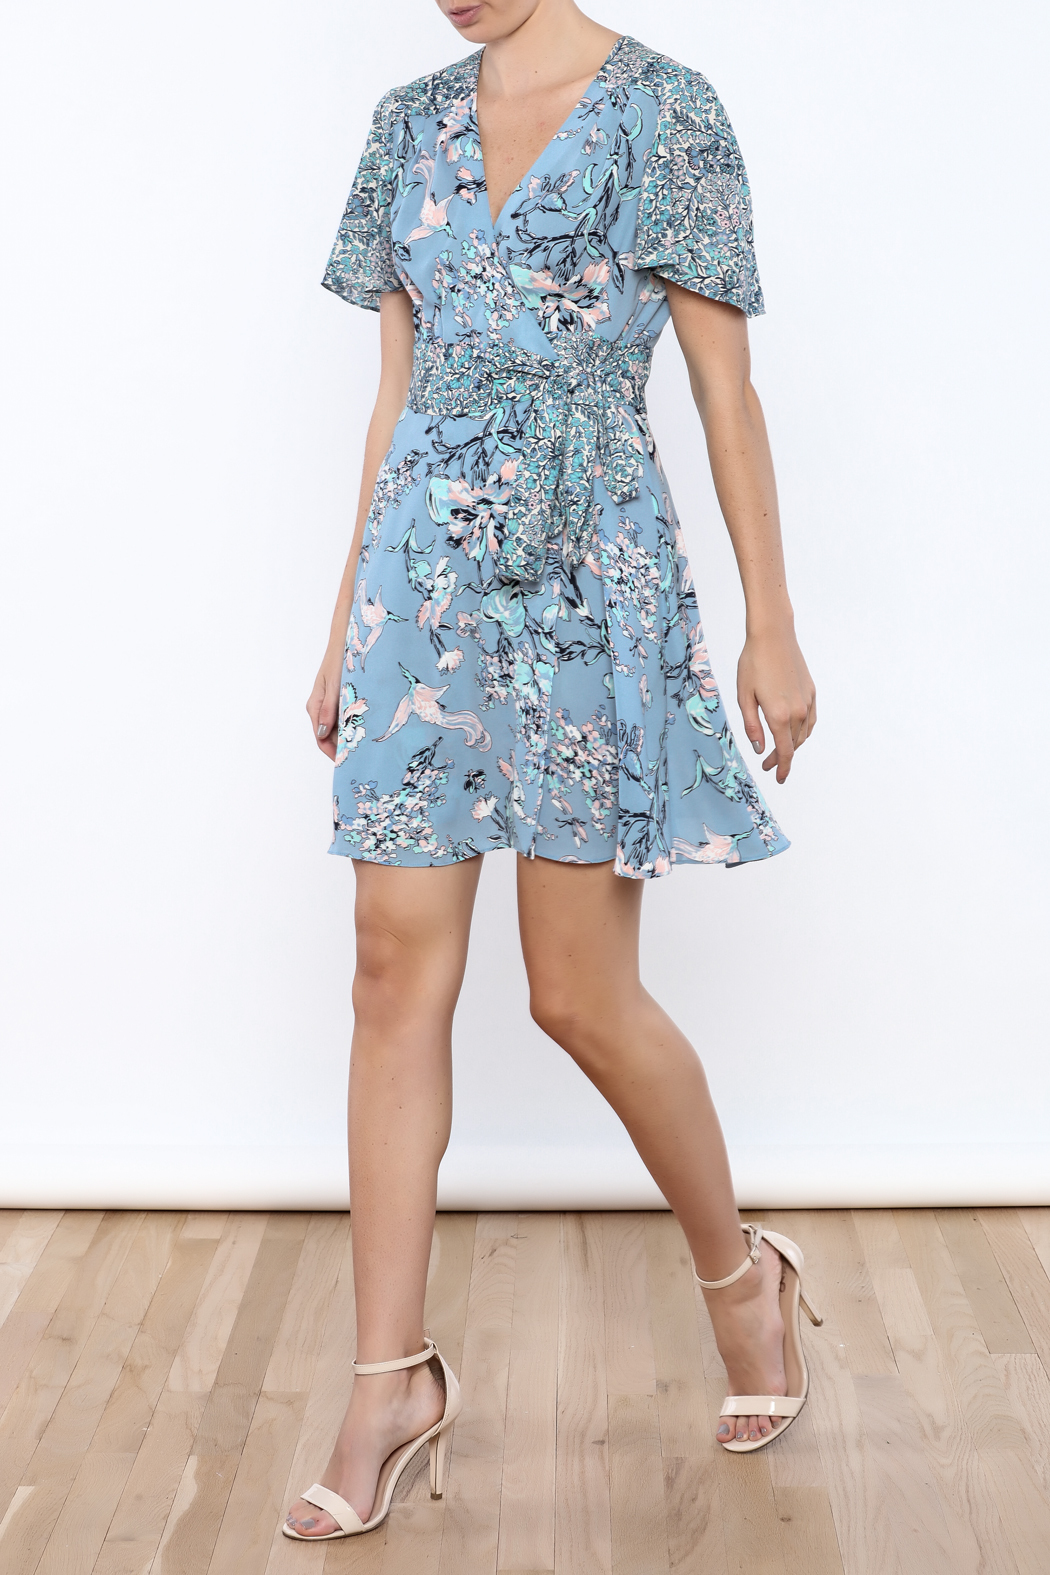 BCBG Max Azria Kylie Wrap Dress from Los Angeles by Urban Clothes ...